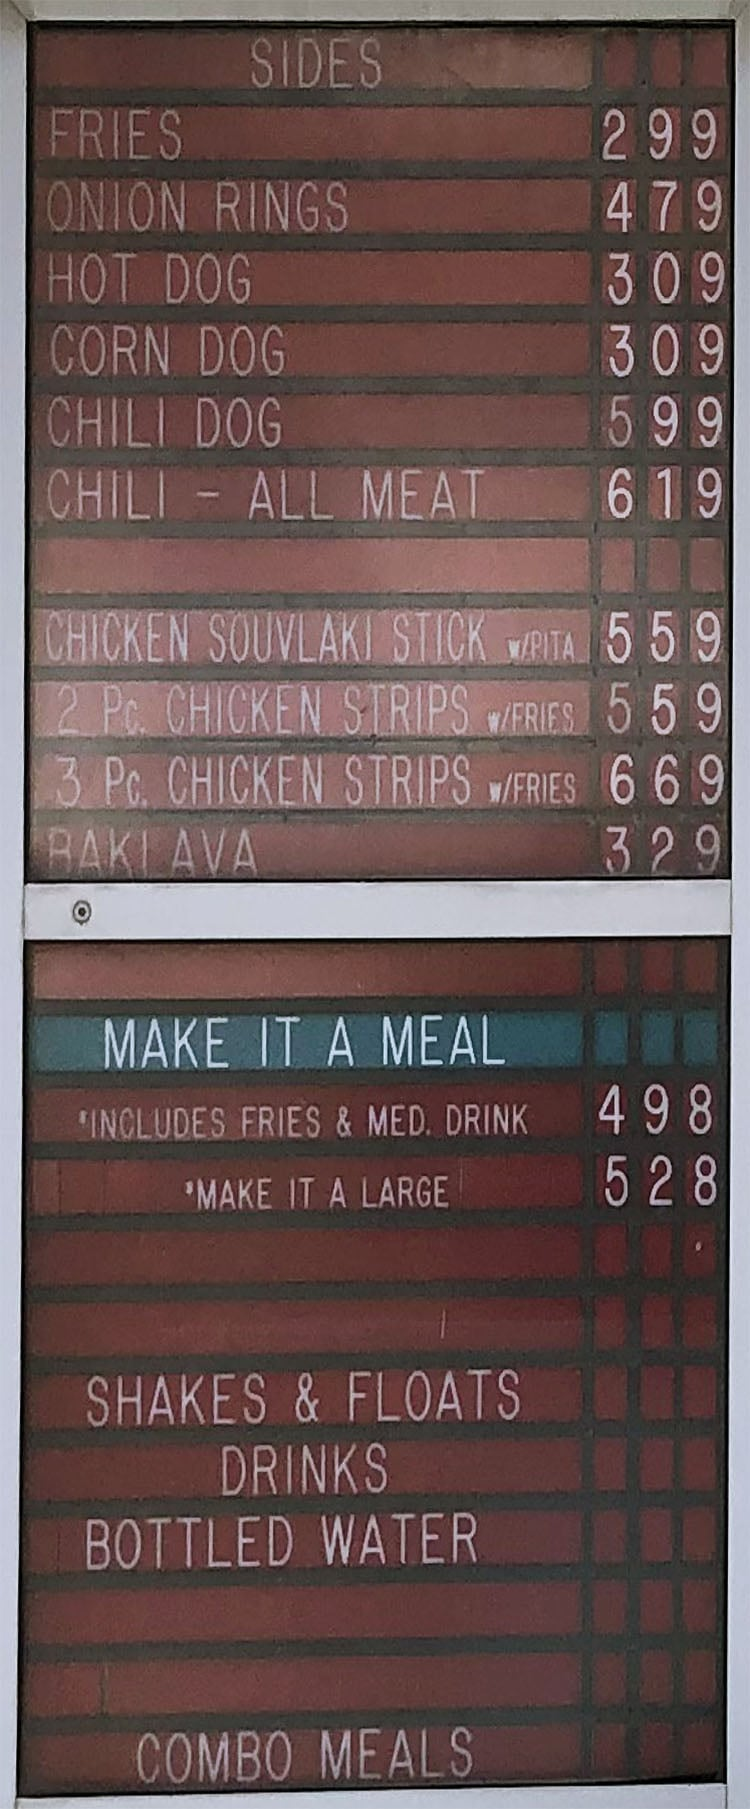 Crown Burgers menu - sides, meals